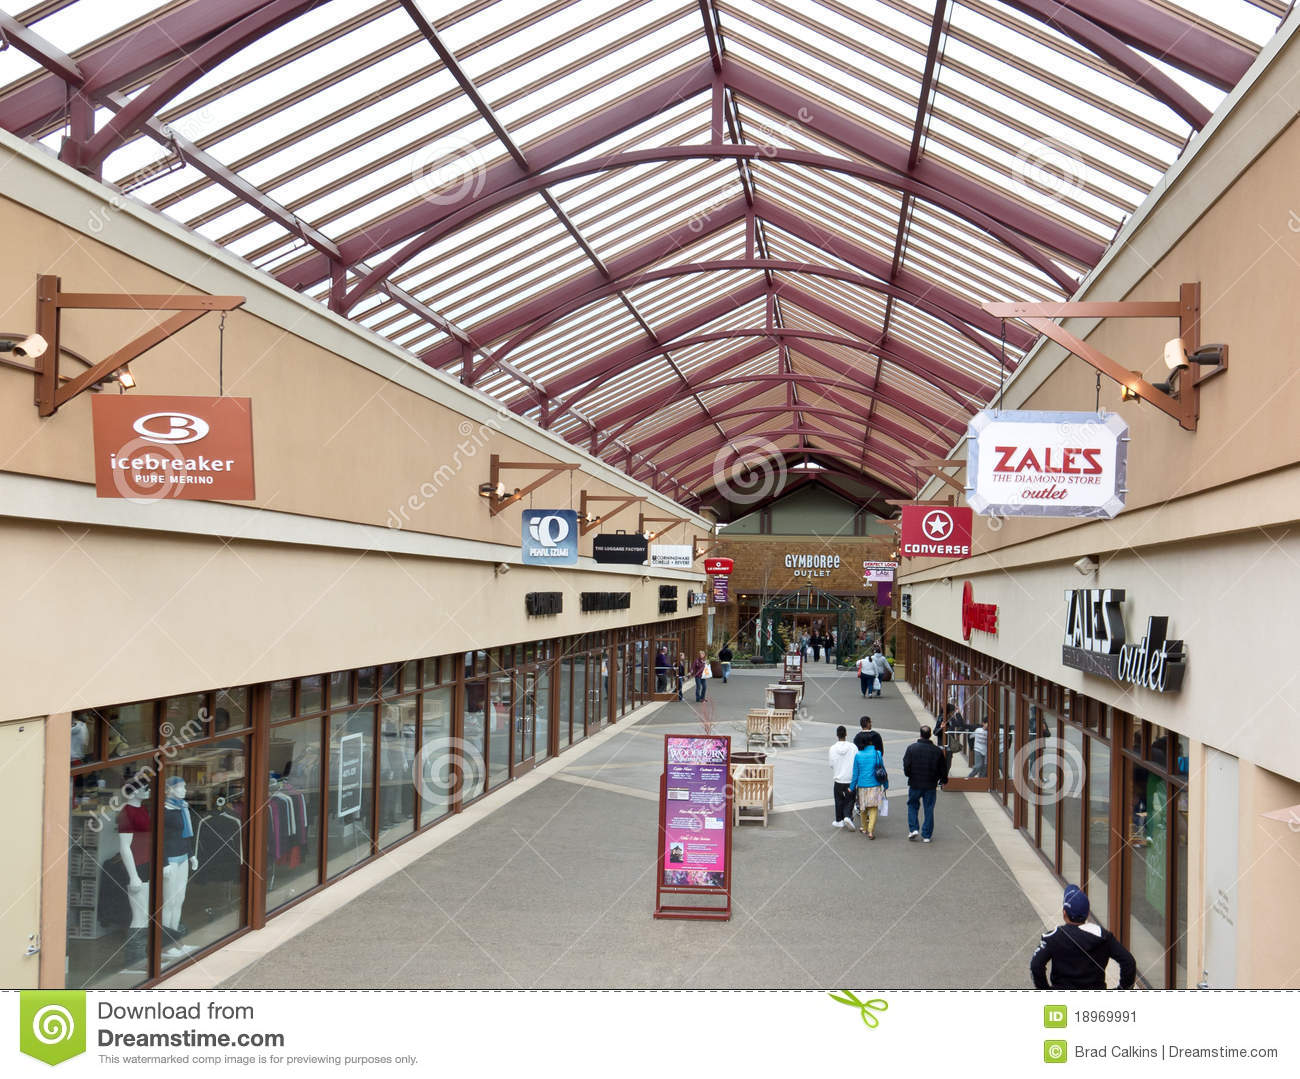 The mall offers skylight-covered walkways as part of modern architecture and landscaping that enhance the location. And as an extra bonus, Woodburn Premium Outlets is able to offer tax-free shopping because there is no state sales tax in Oregon, nor is there local sales tax in Woodburn.